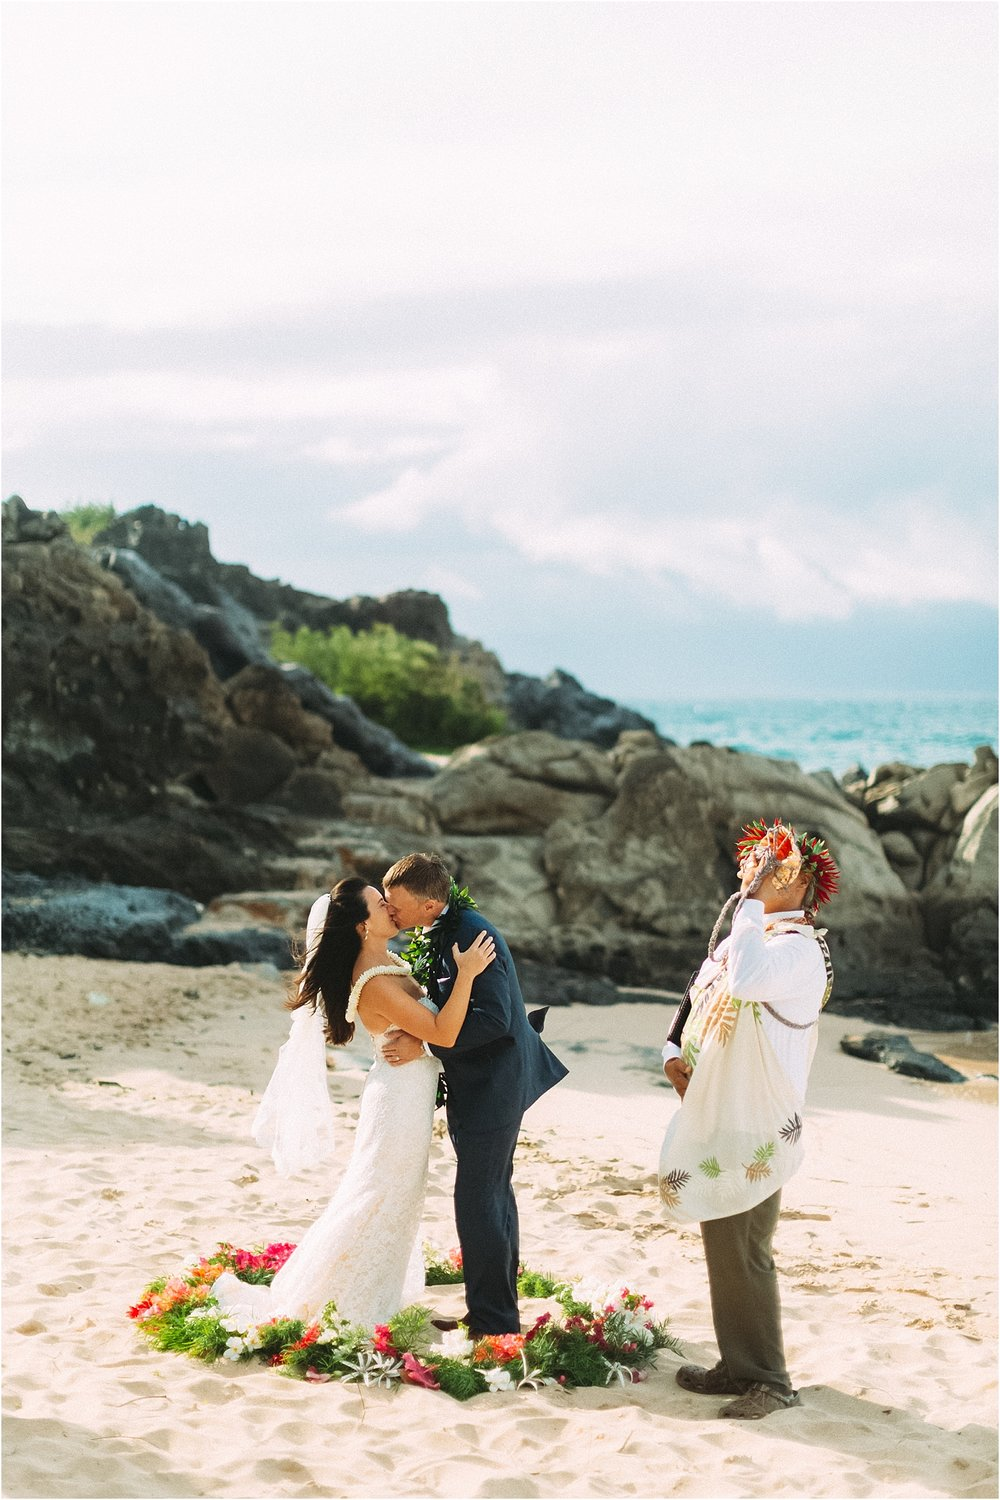 angie-diaz-photography-maui-wedding-ironwoods-beach_0028.jpg